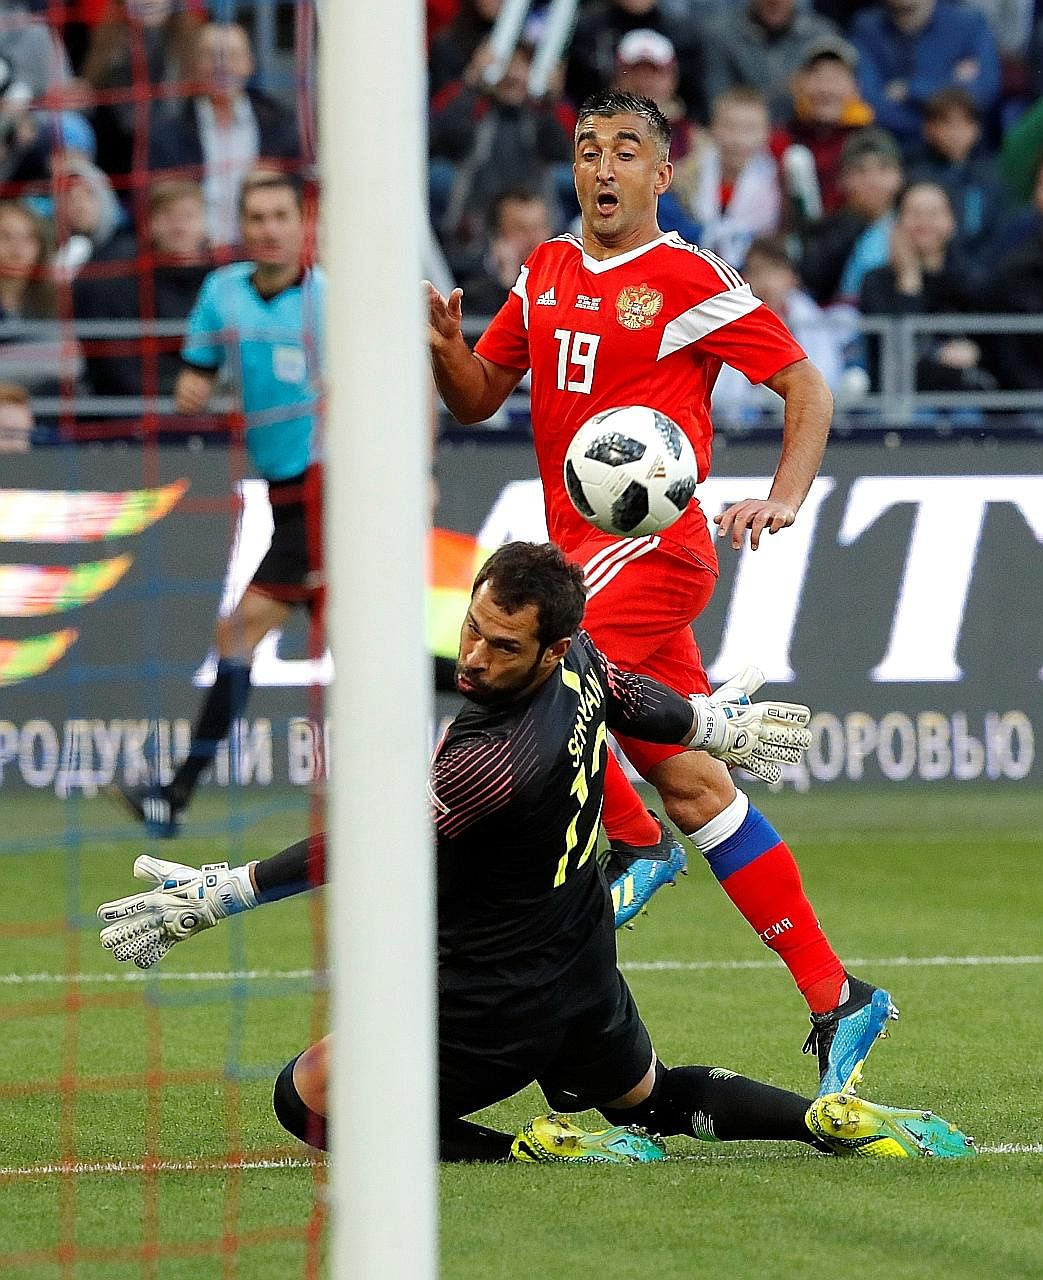 Aleksander Samedov scoring past Turkey goalkeeper Serkan Kirintili at Moscow's VEB Arena to open accounts for Russia on Tuesday. But the visitors equalised to stretch the World Cup hosts' winless spell to seven games.